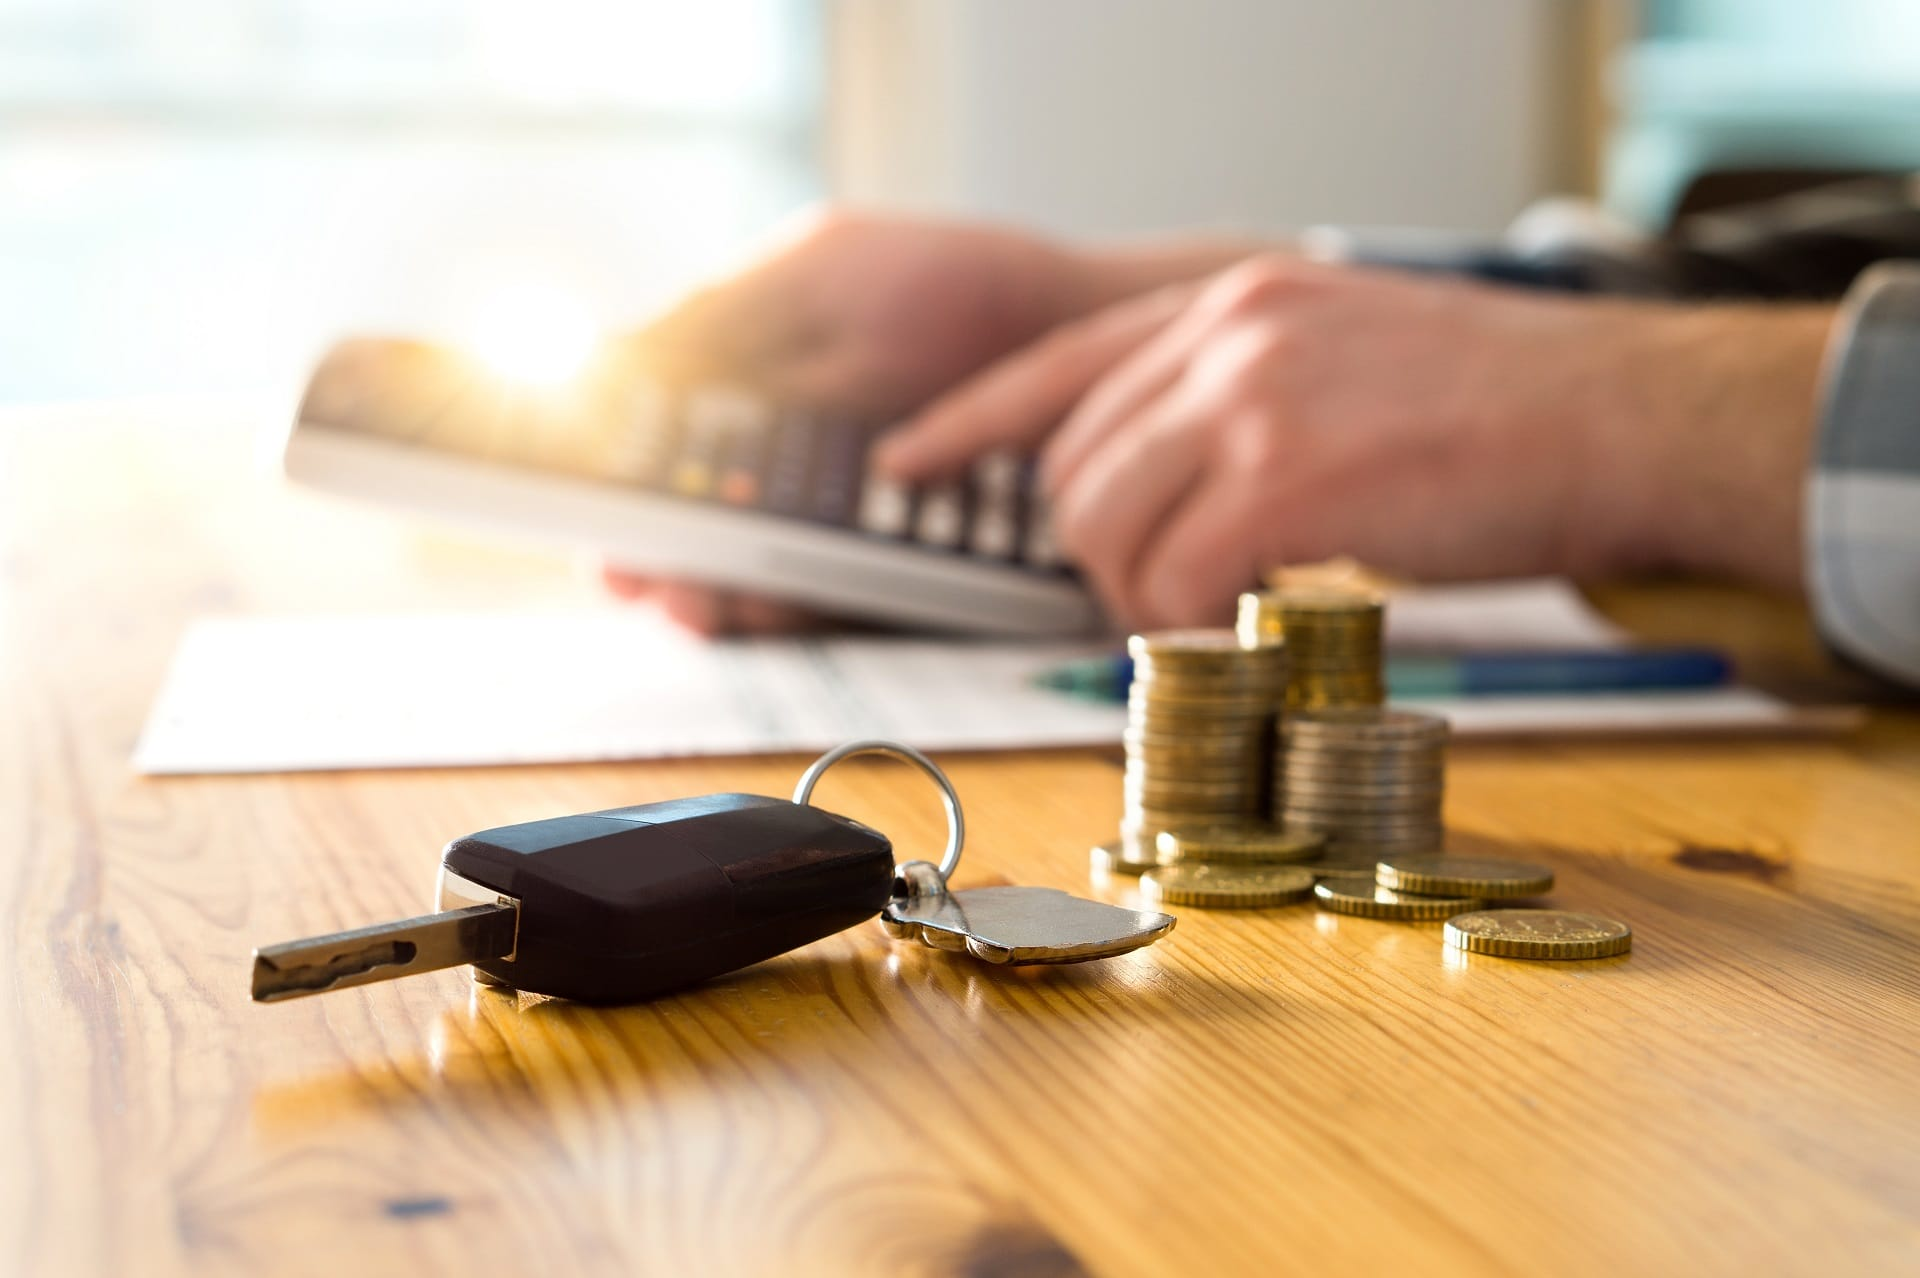 California Auto Insurance Holders Should Expect More Refunds Shortly